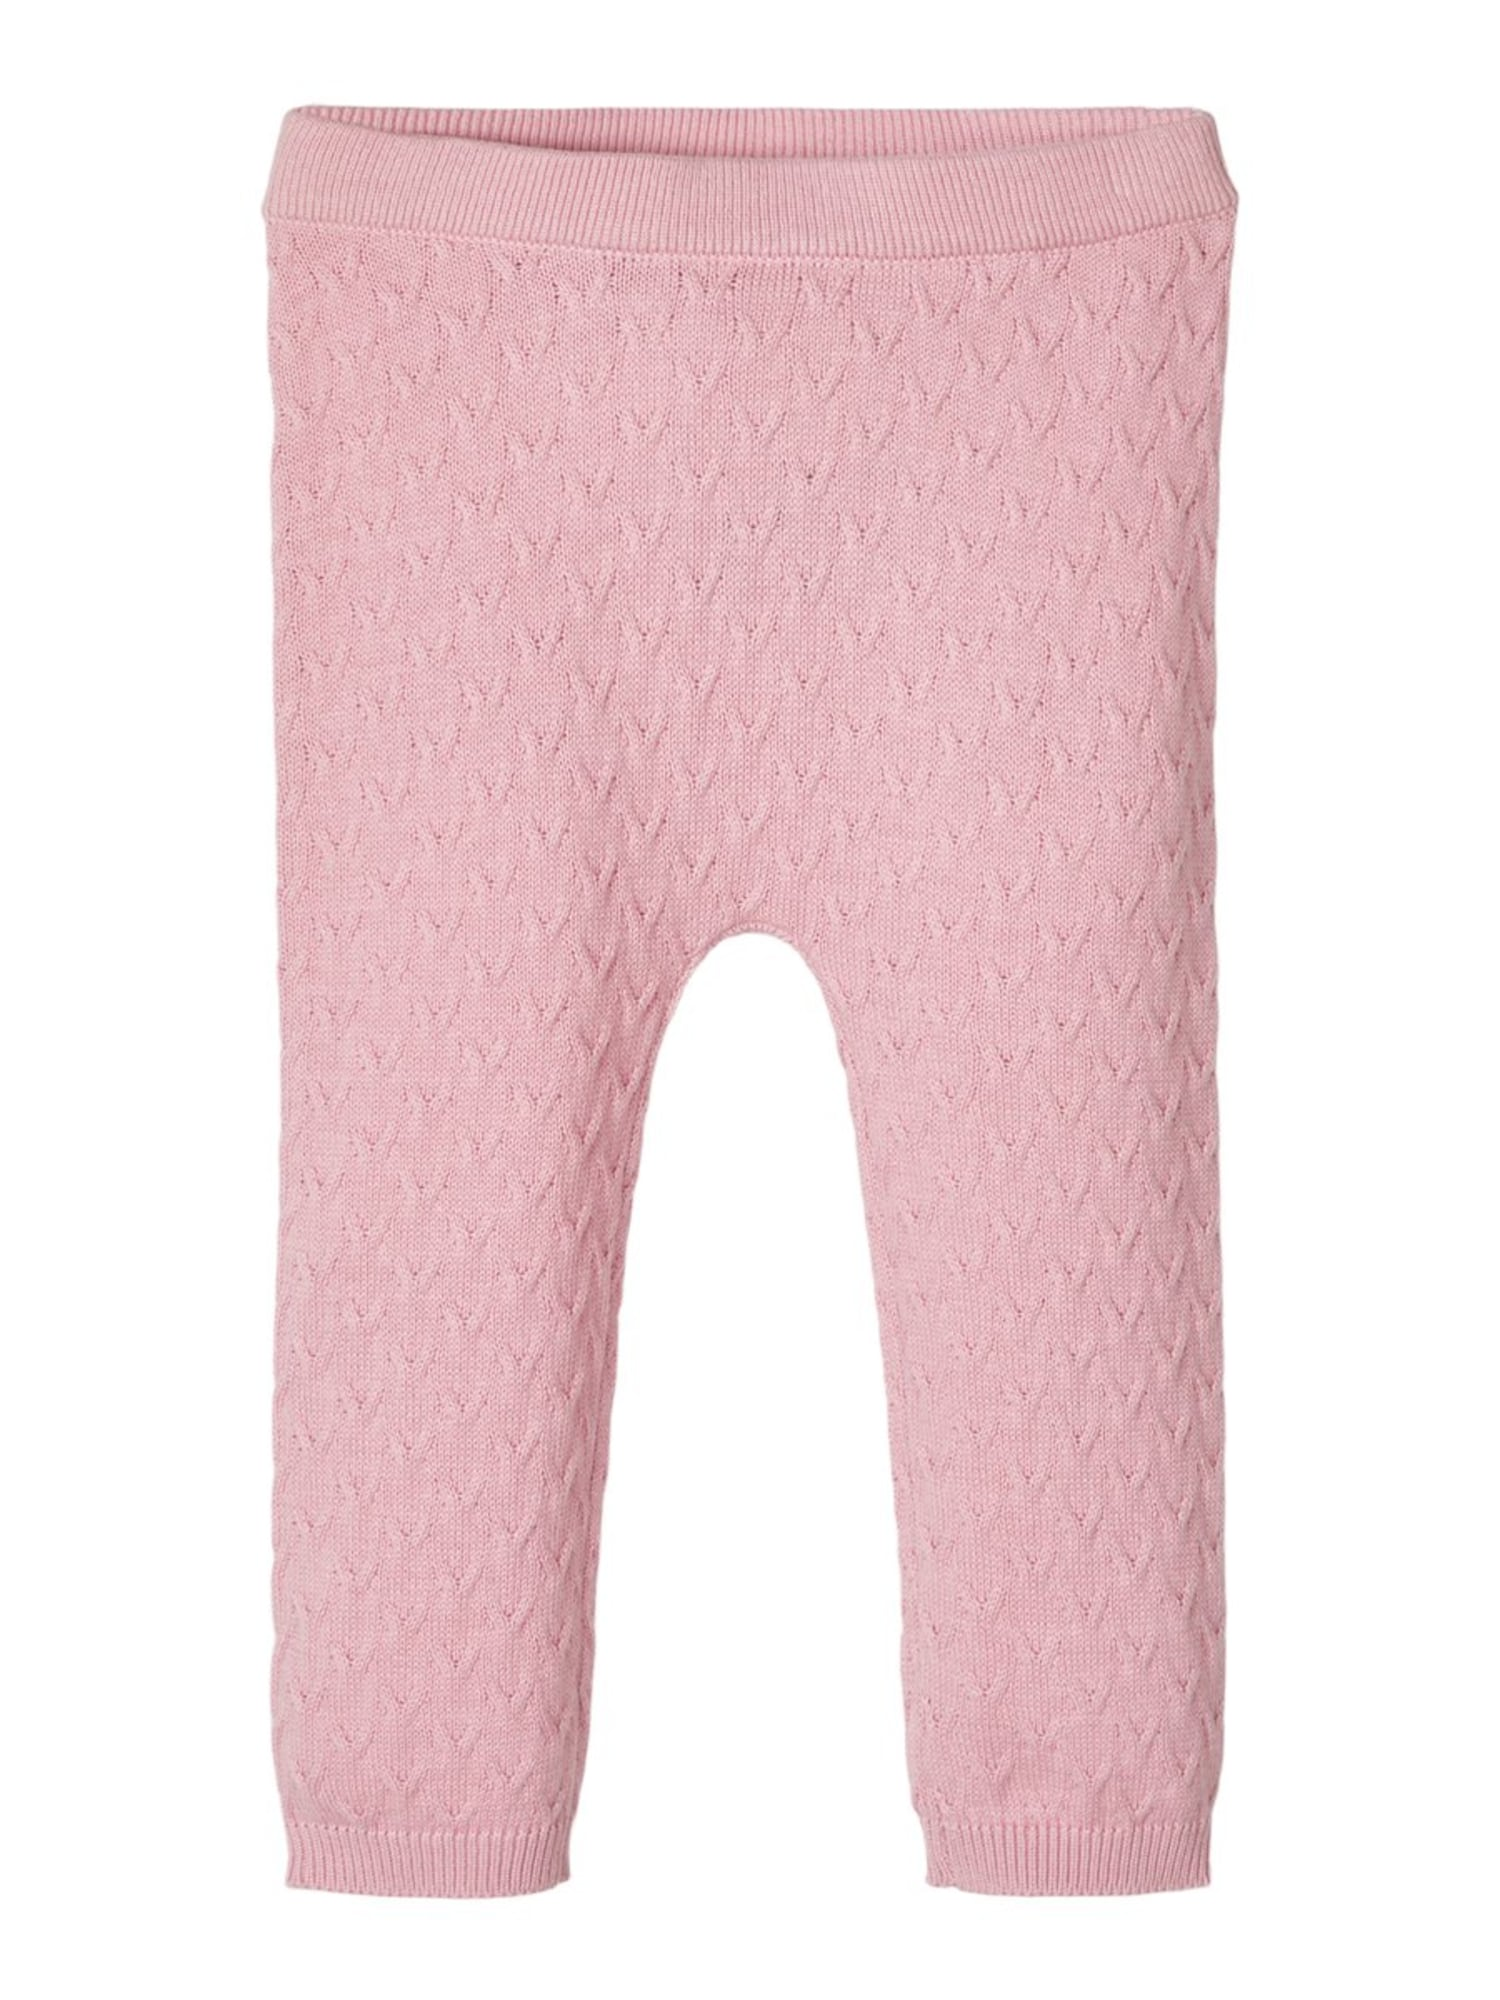 Babyhosen - Strickhose - Onlineshop ABOUT YOU